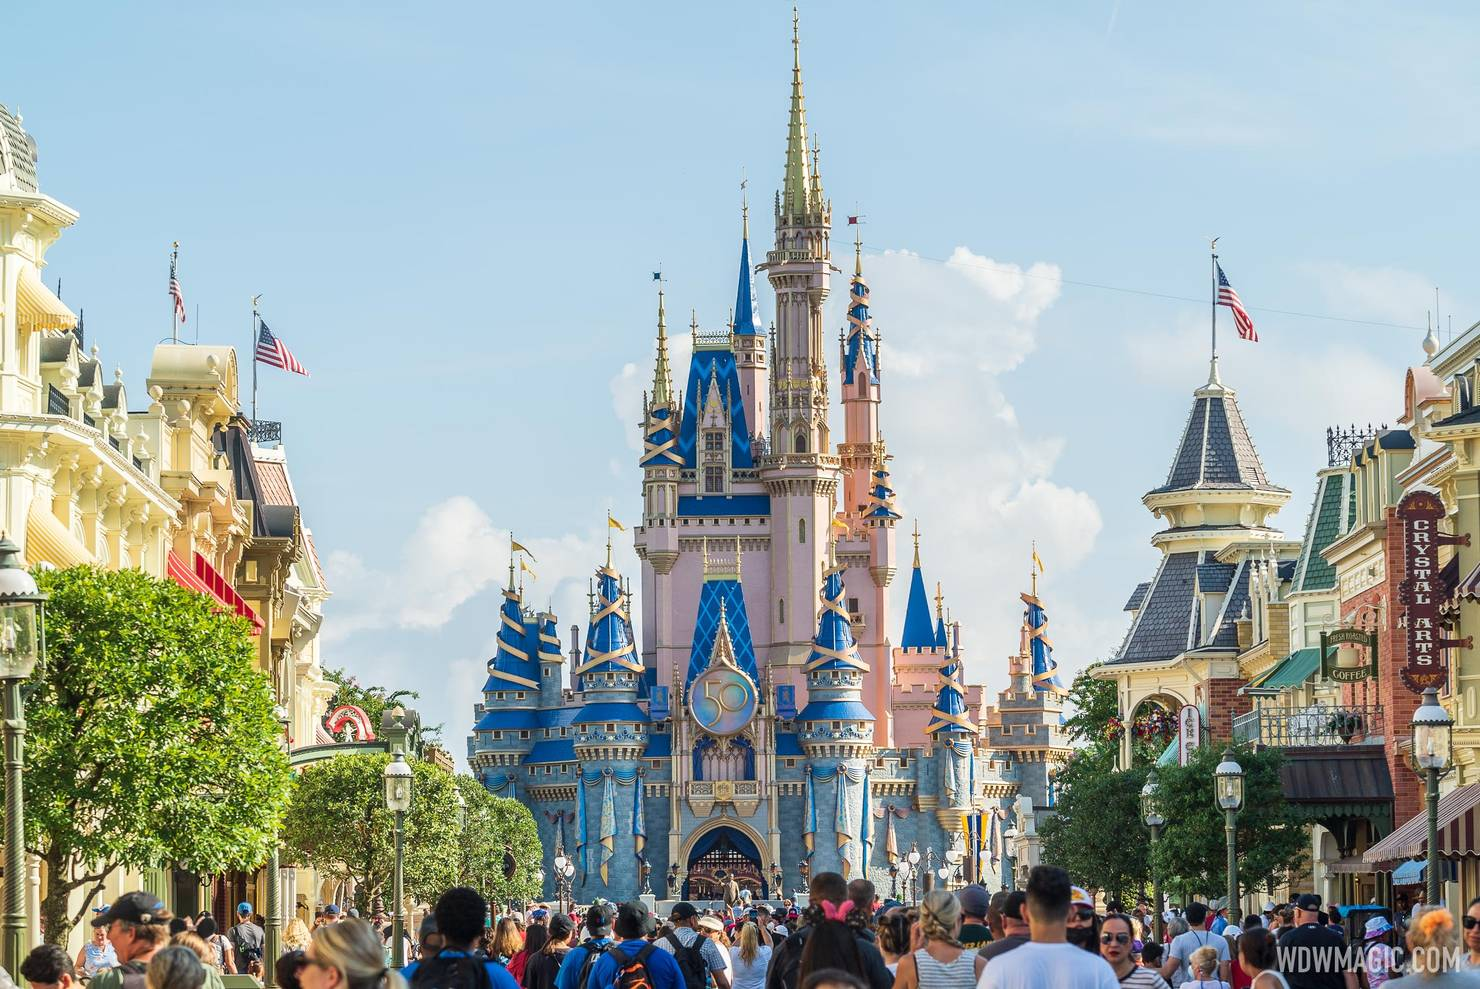 All Cast members at Walt Disney World will soon be vaccinated against COVID-19